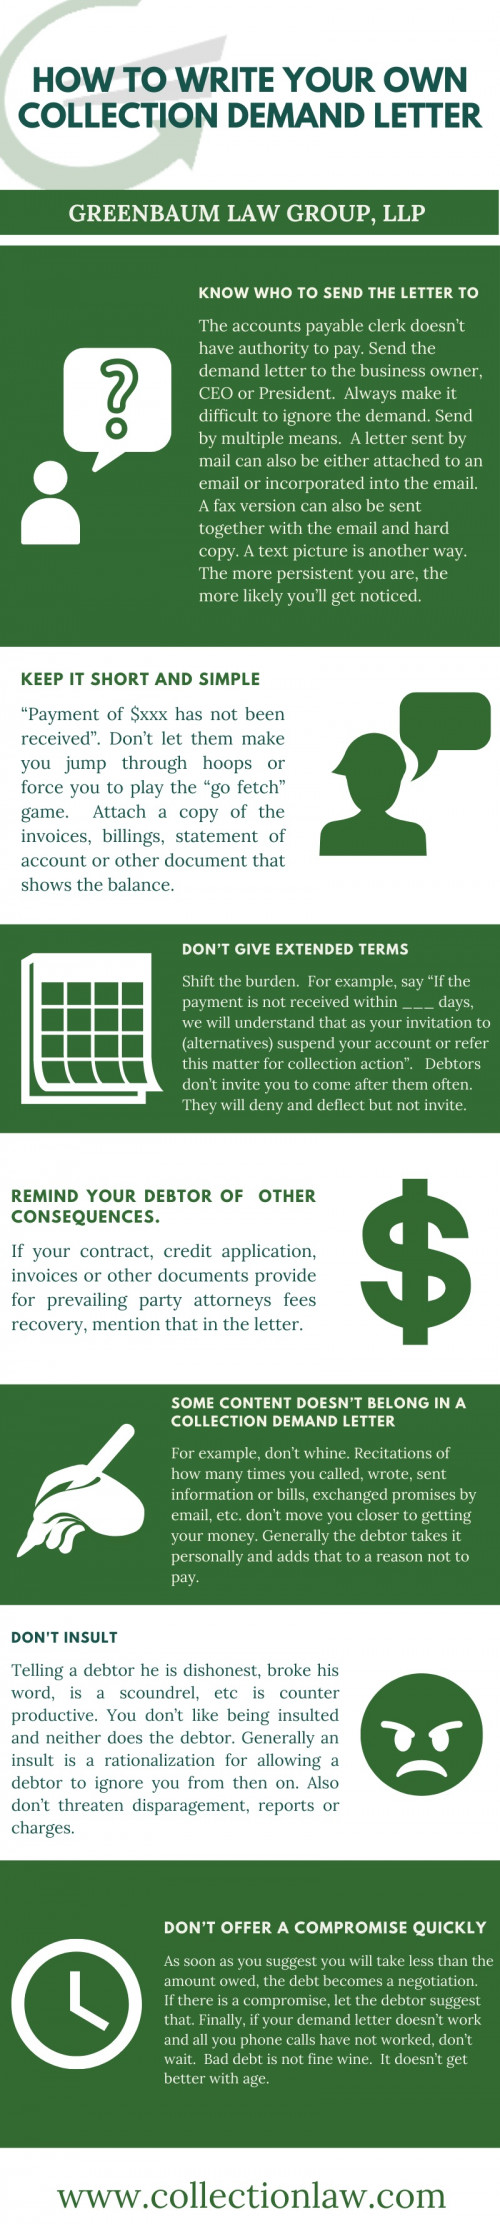 How-to-Write-Your-Own-Collection-Demand-Letteracb8f8079d092c8f.jpg